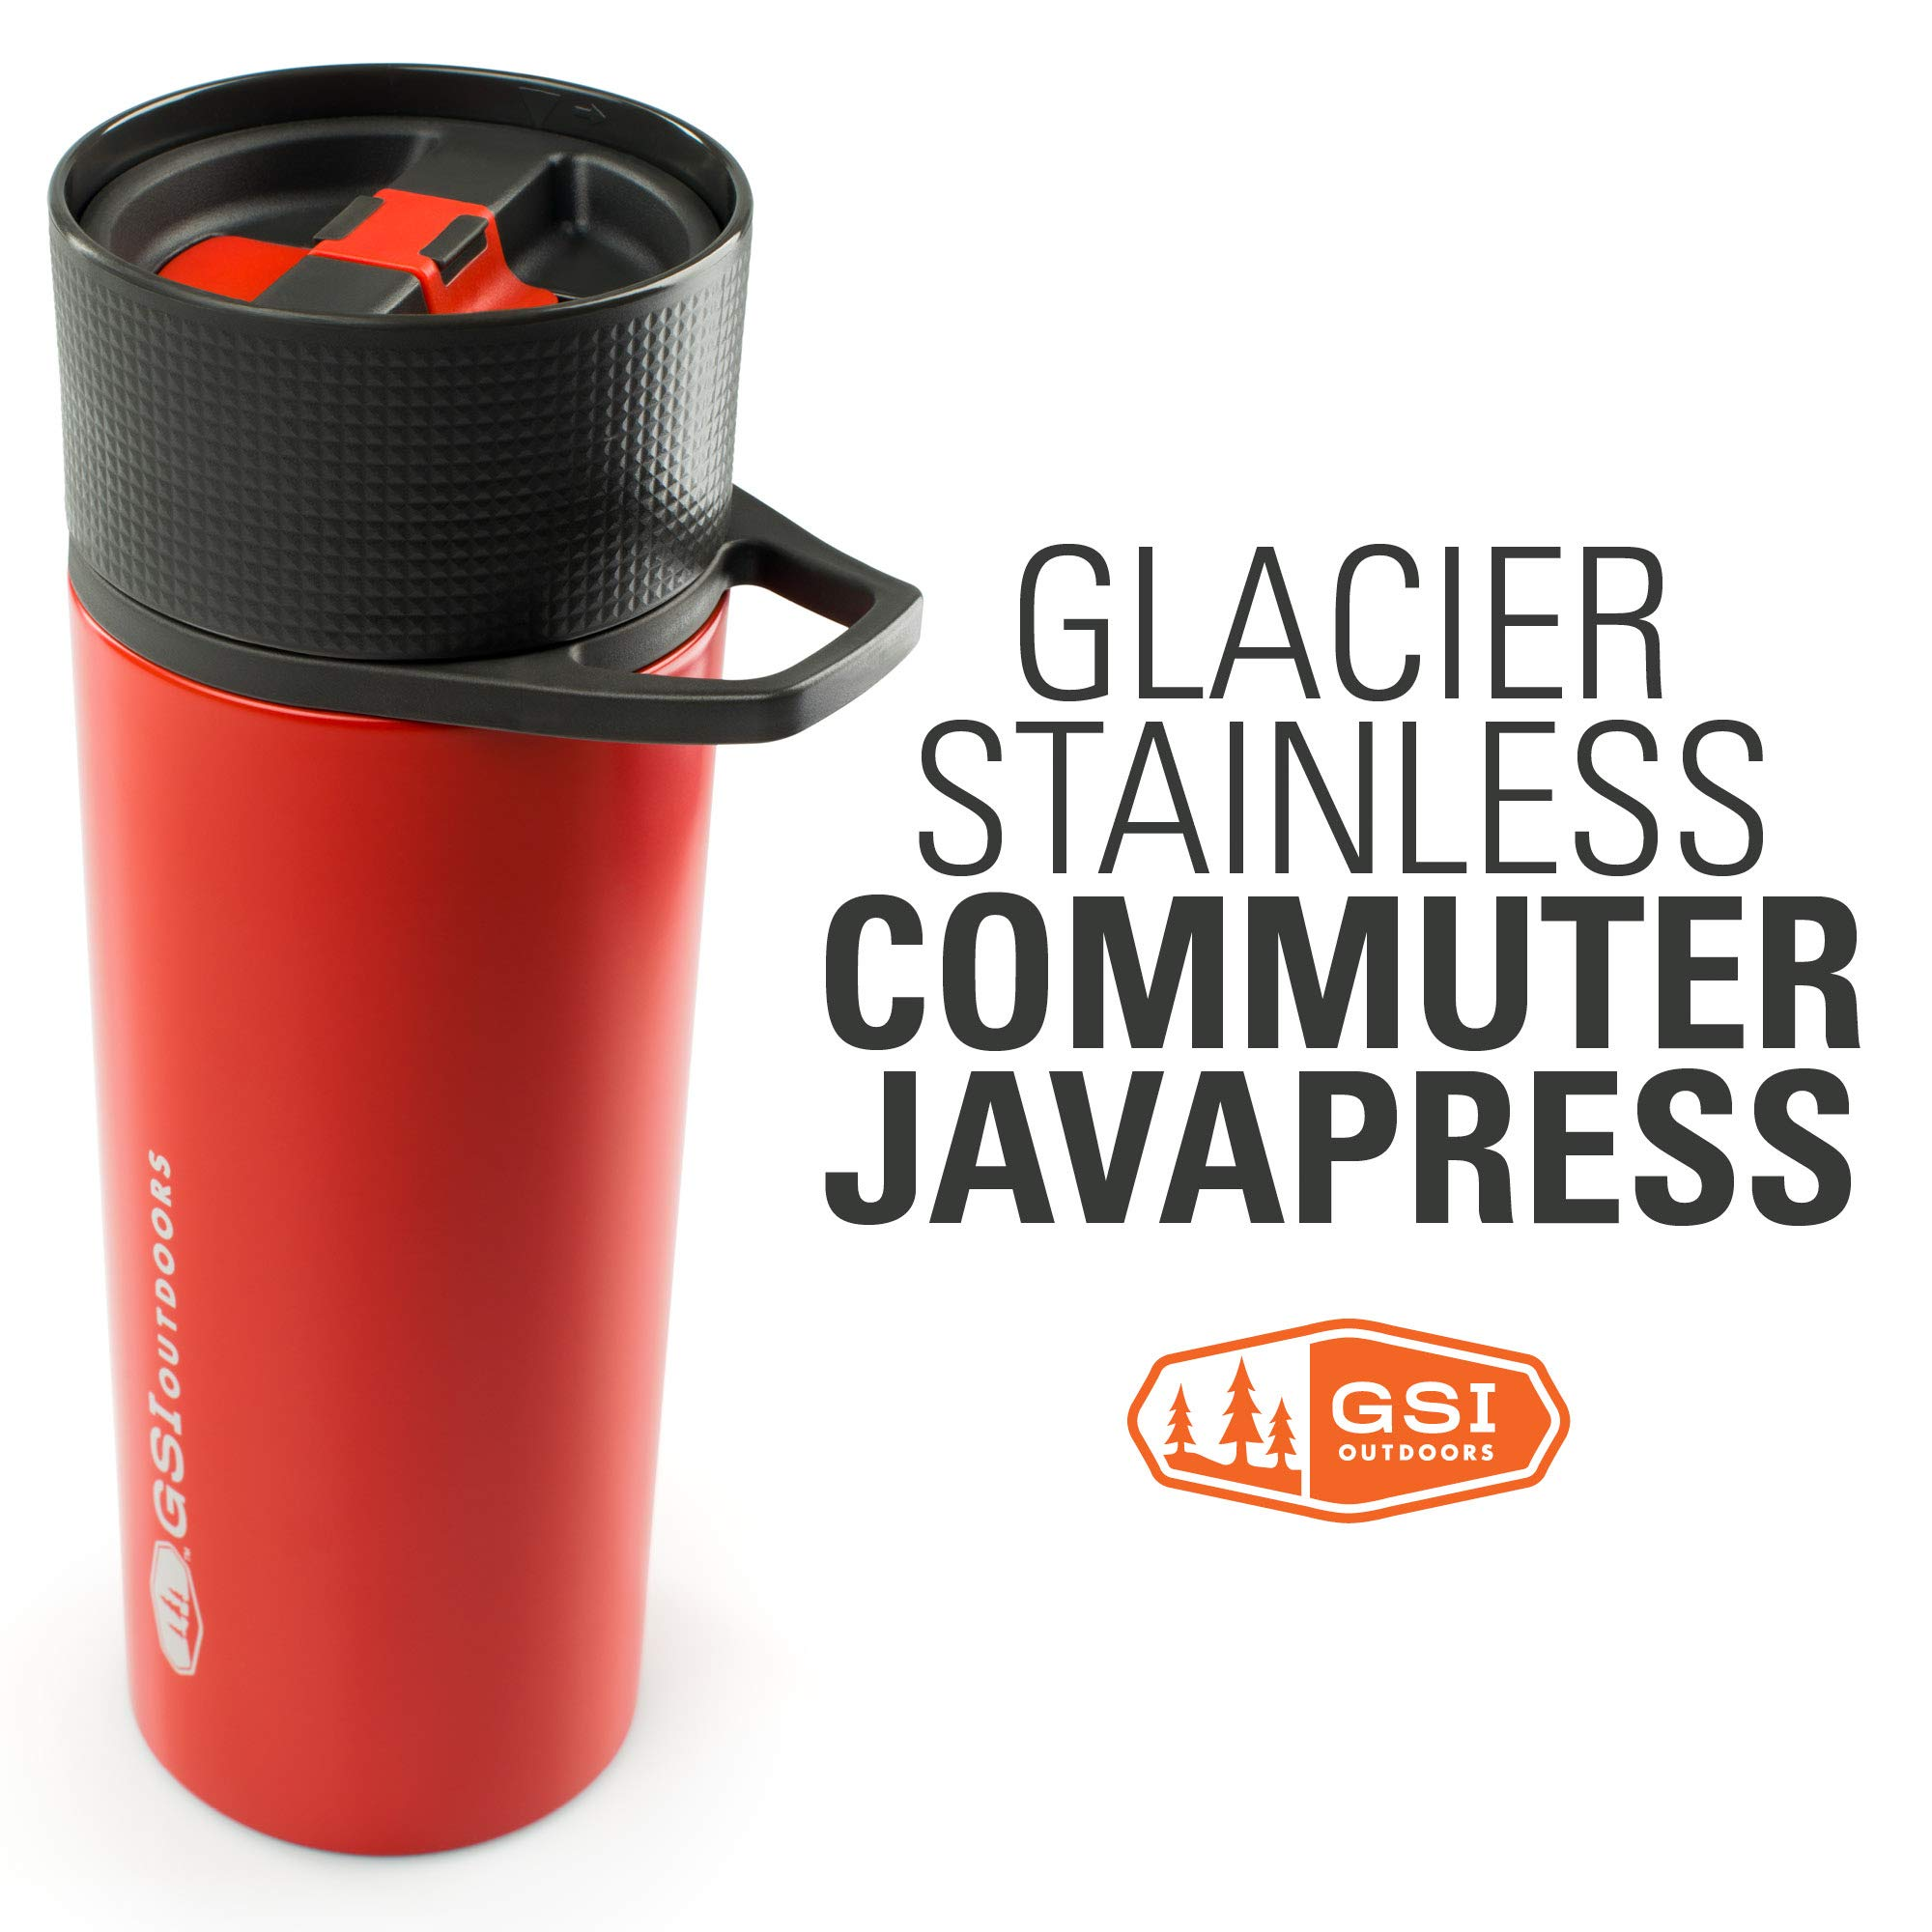 GSI Outdoors - Glacier Stainless Commuter JavaPress, French Press Coffee Mug, Superior Backcountry Cookware Since 1985, Red by GSI Outdoors